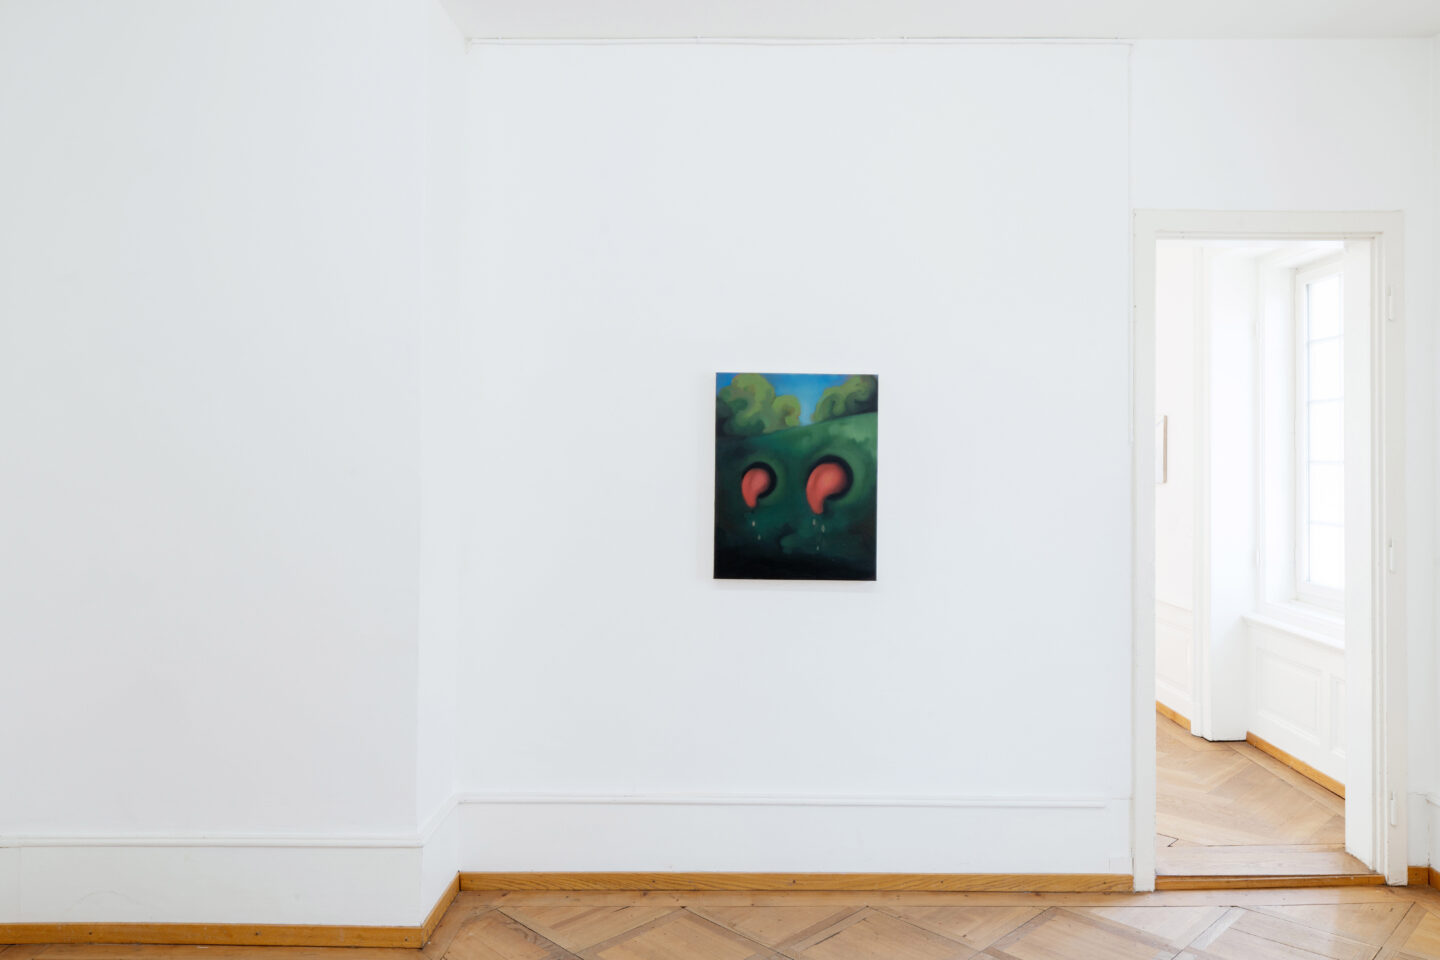 Exhibition View Groupshow «Soft Shell; view on Anna Shirin Schneider» at Kunsthaus Langenthal, Langenthal, 2020 / Photo: CE / Courtesy: the artists and Kunsthaus Langenthal